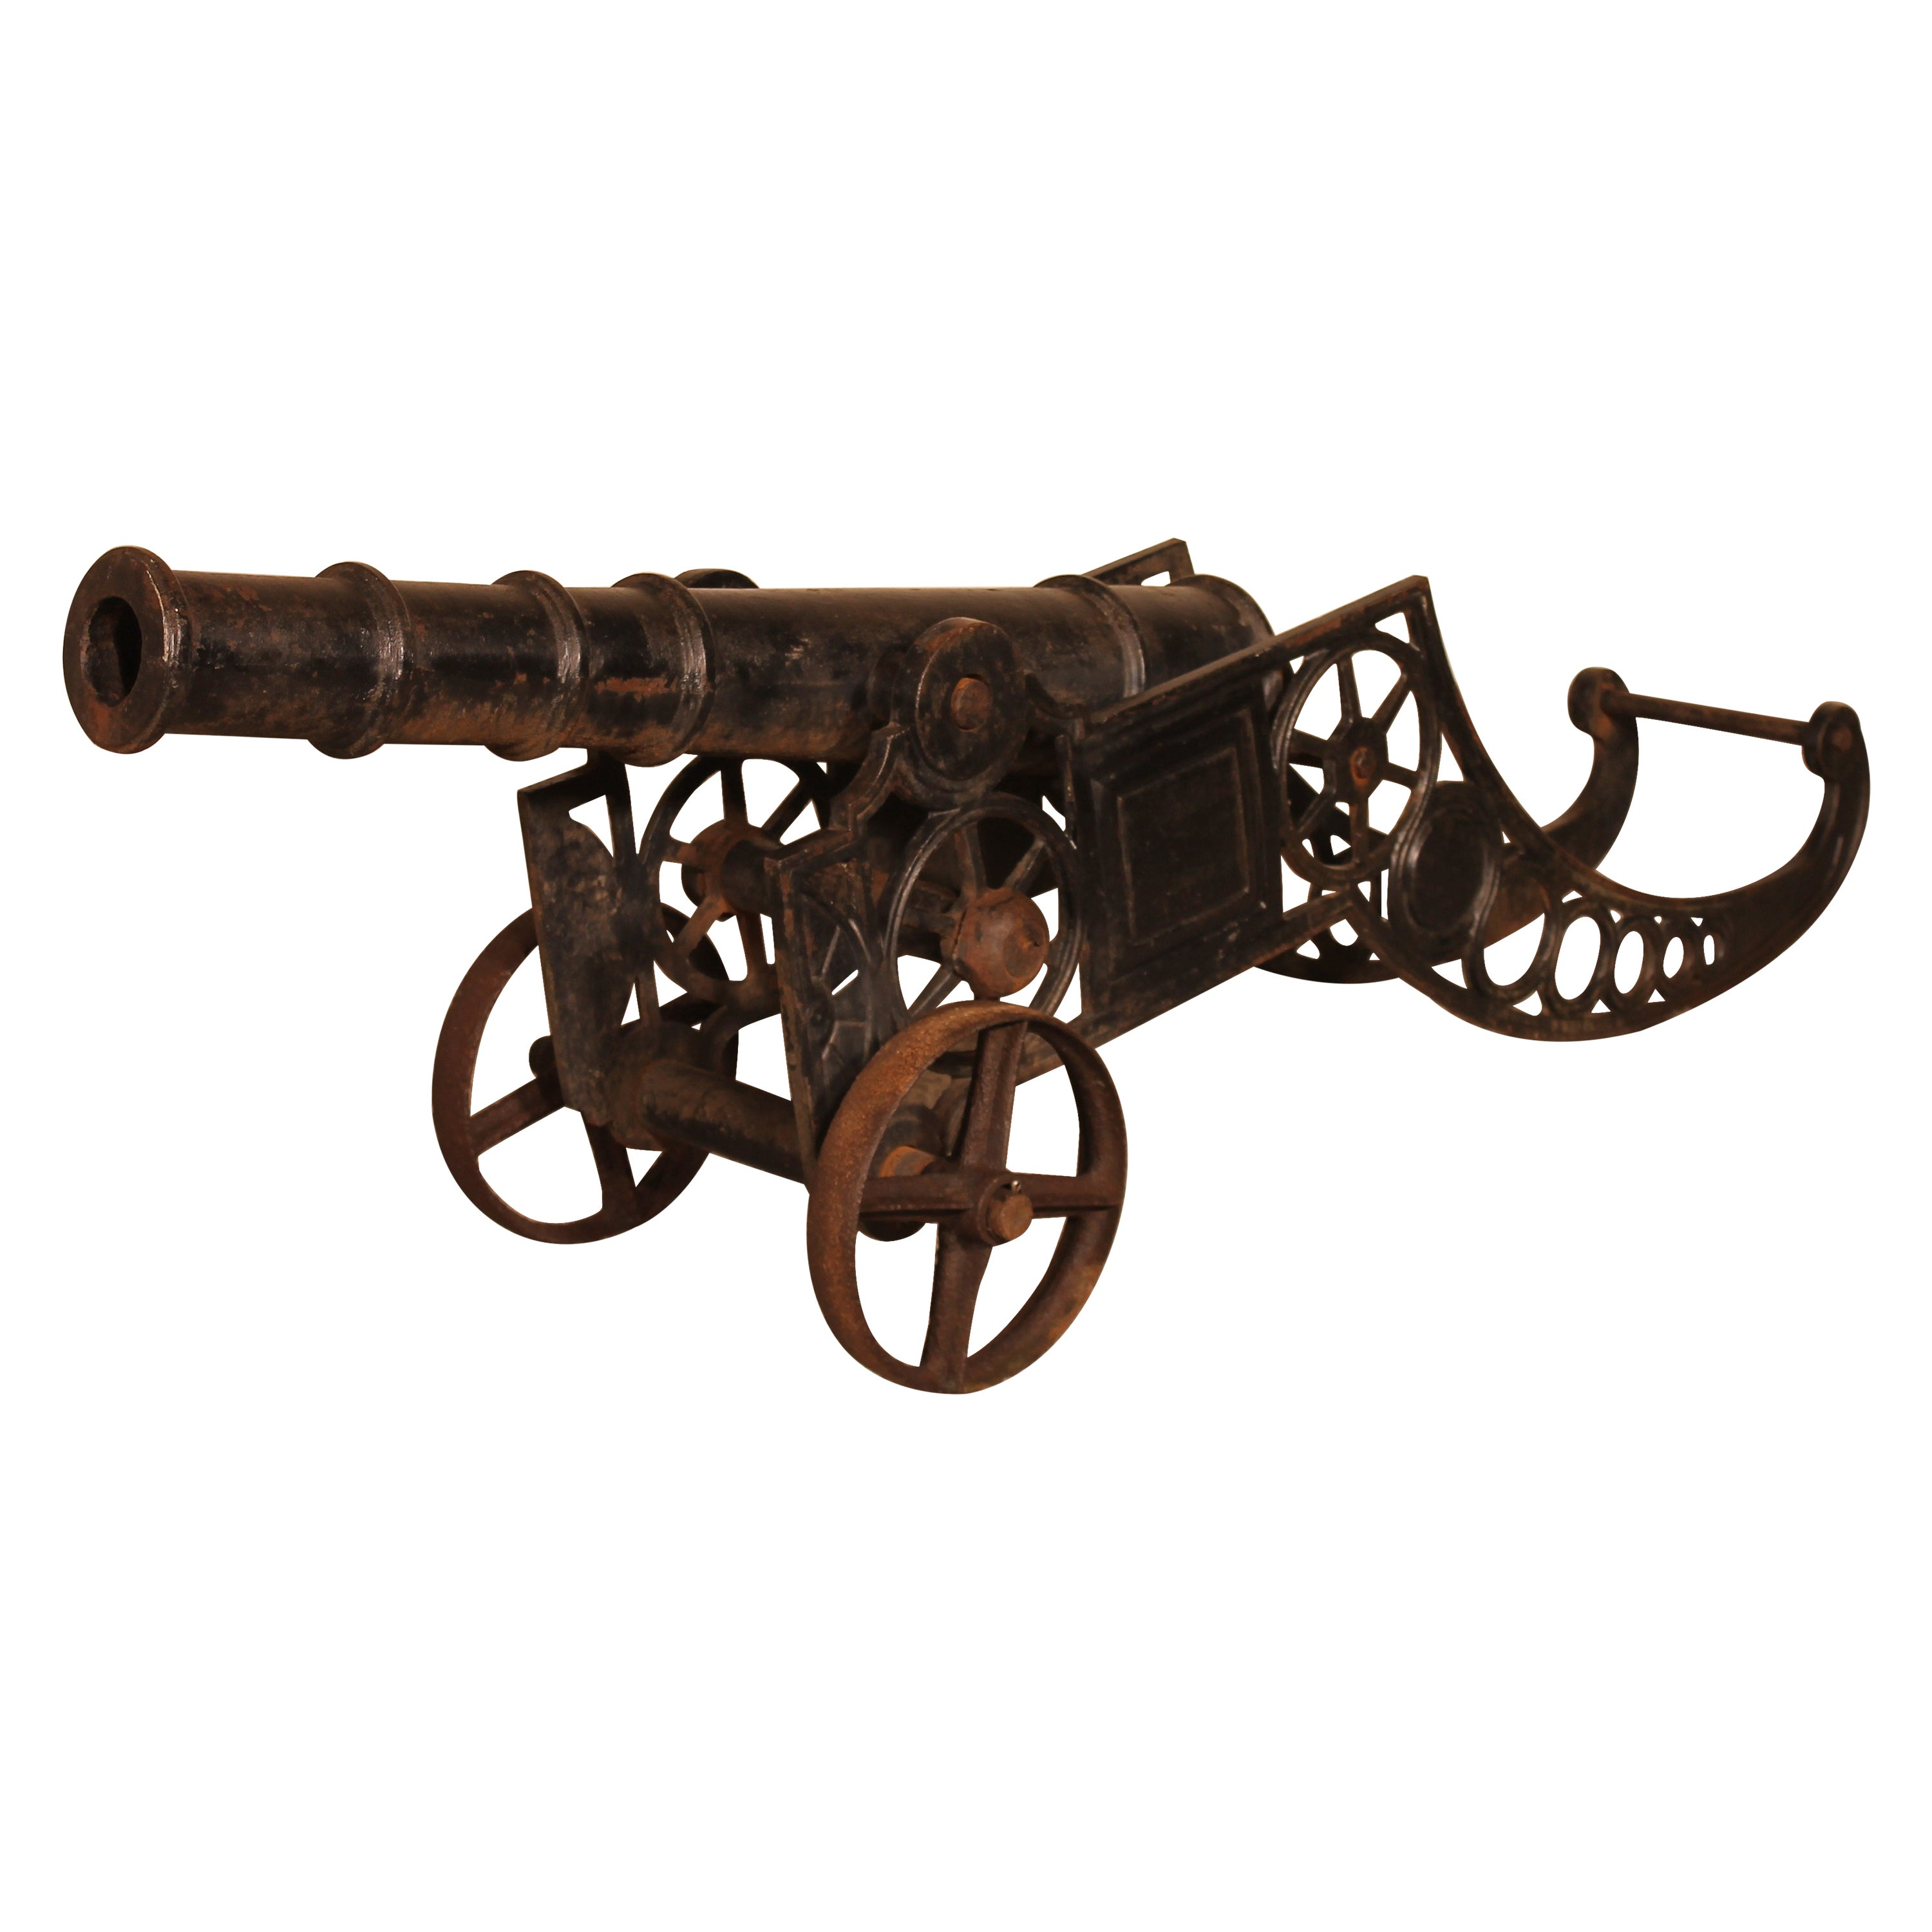 Decorative Cast Iron Cannon from England